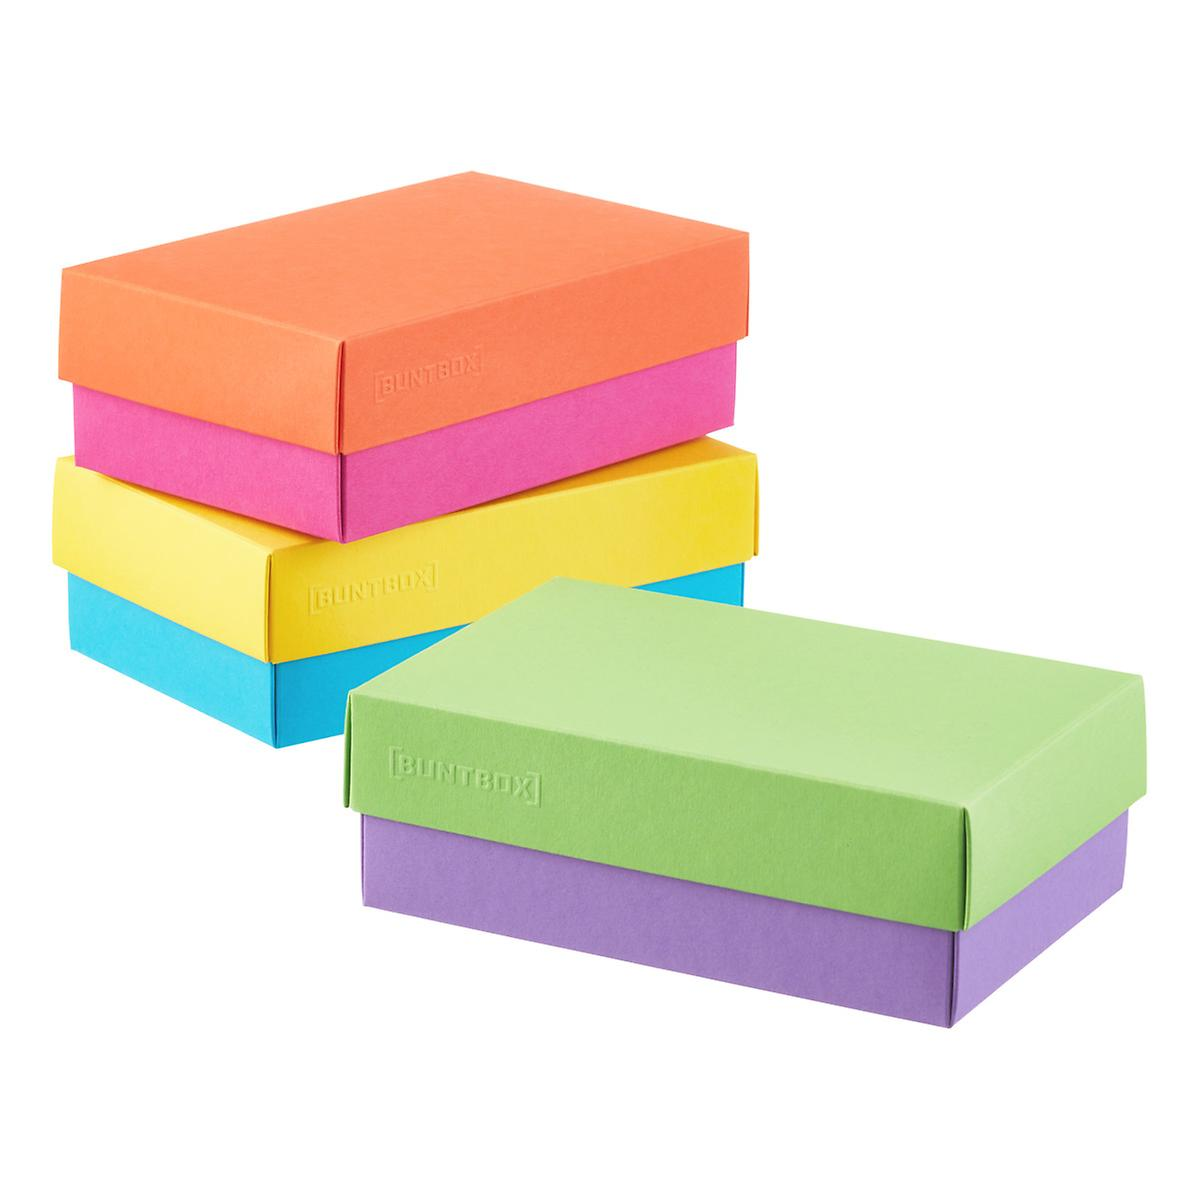 2 piece gift boxes assorted bright